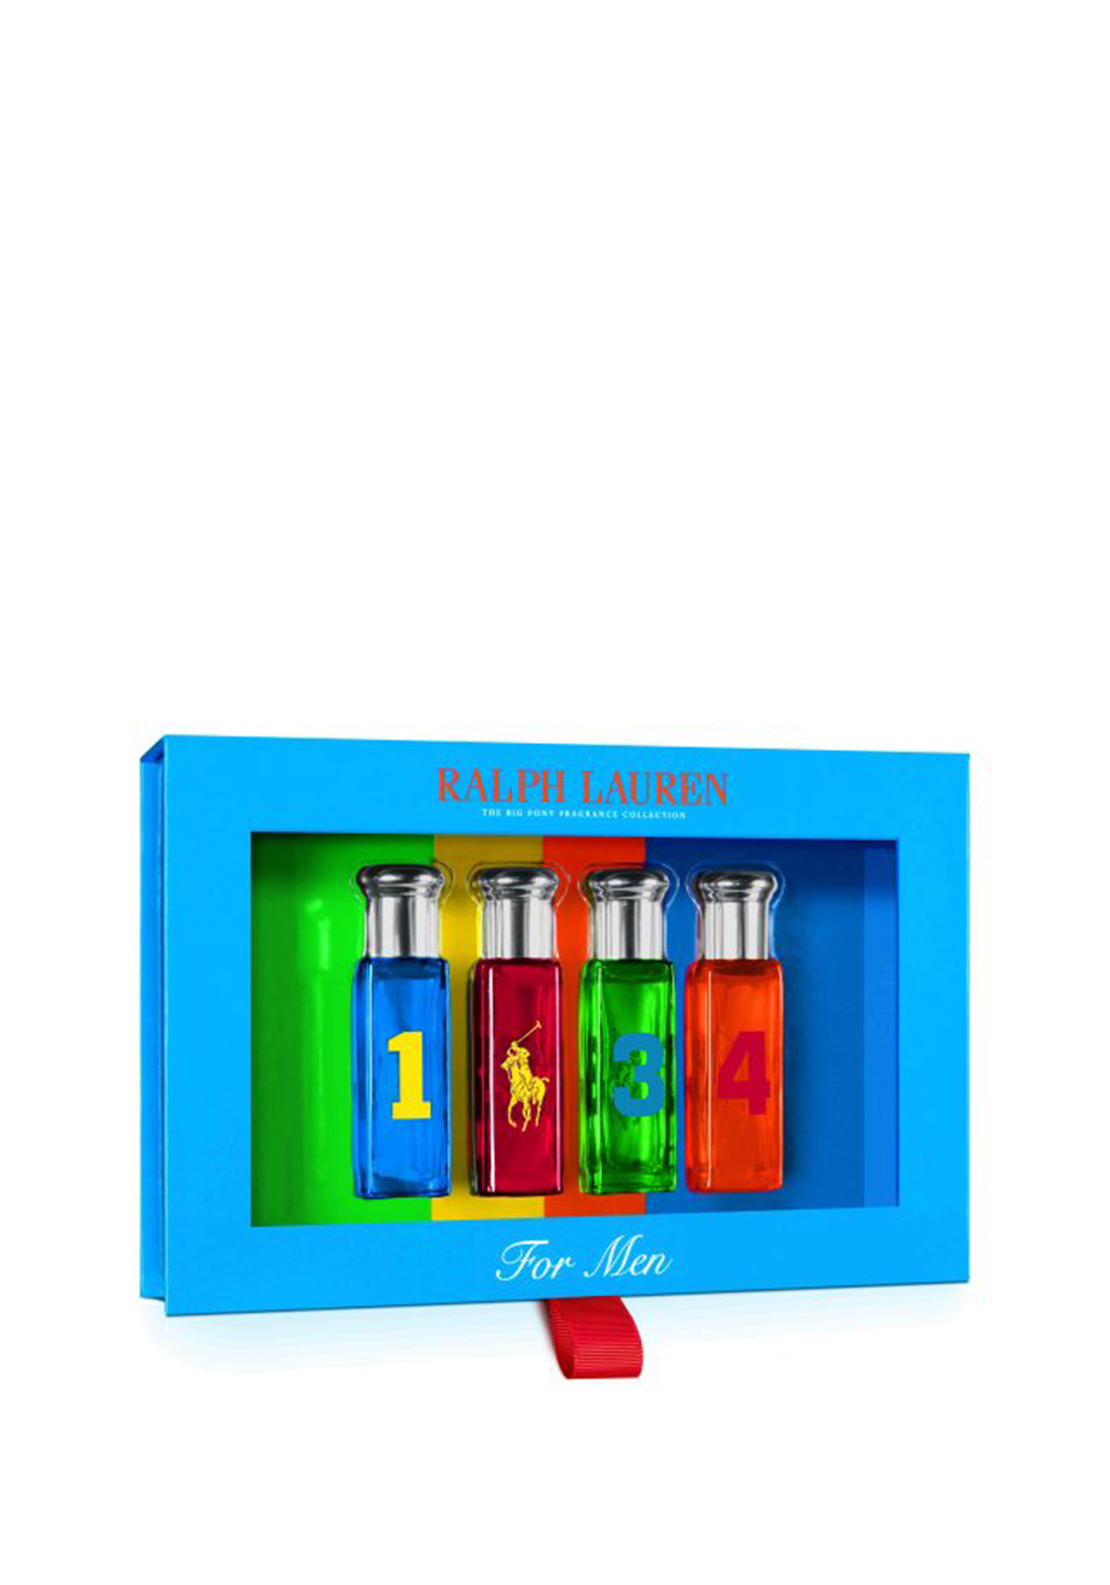 Ralph Lauren Big Pony Fragrance Collection Gift Set For Men